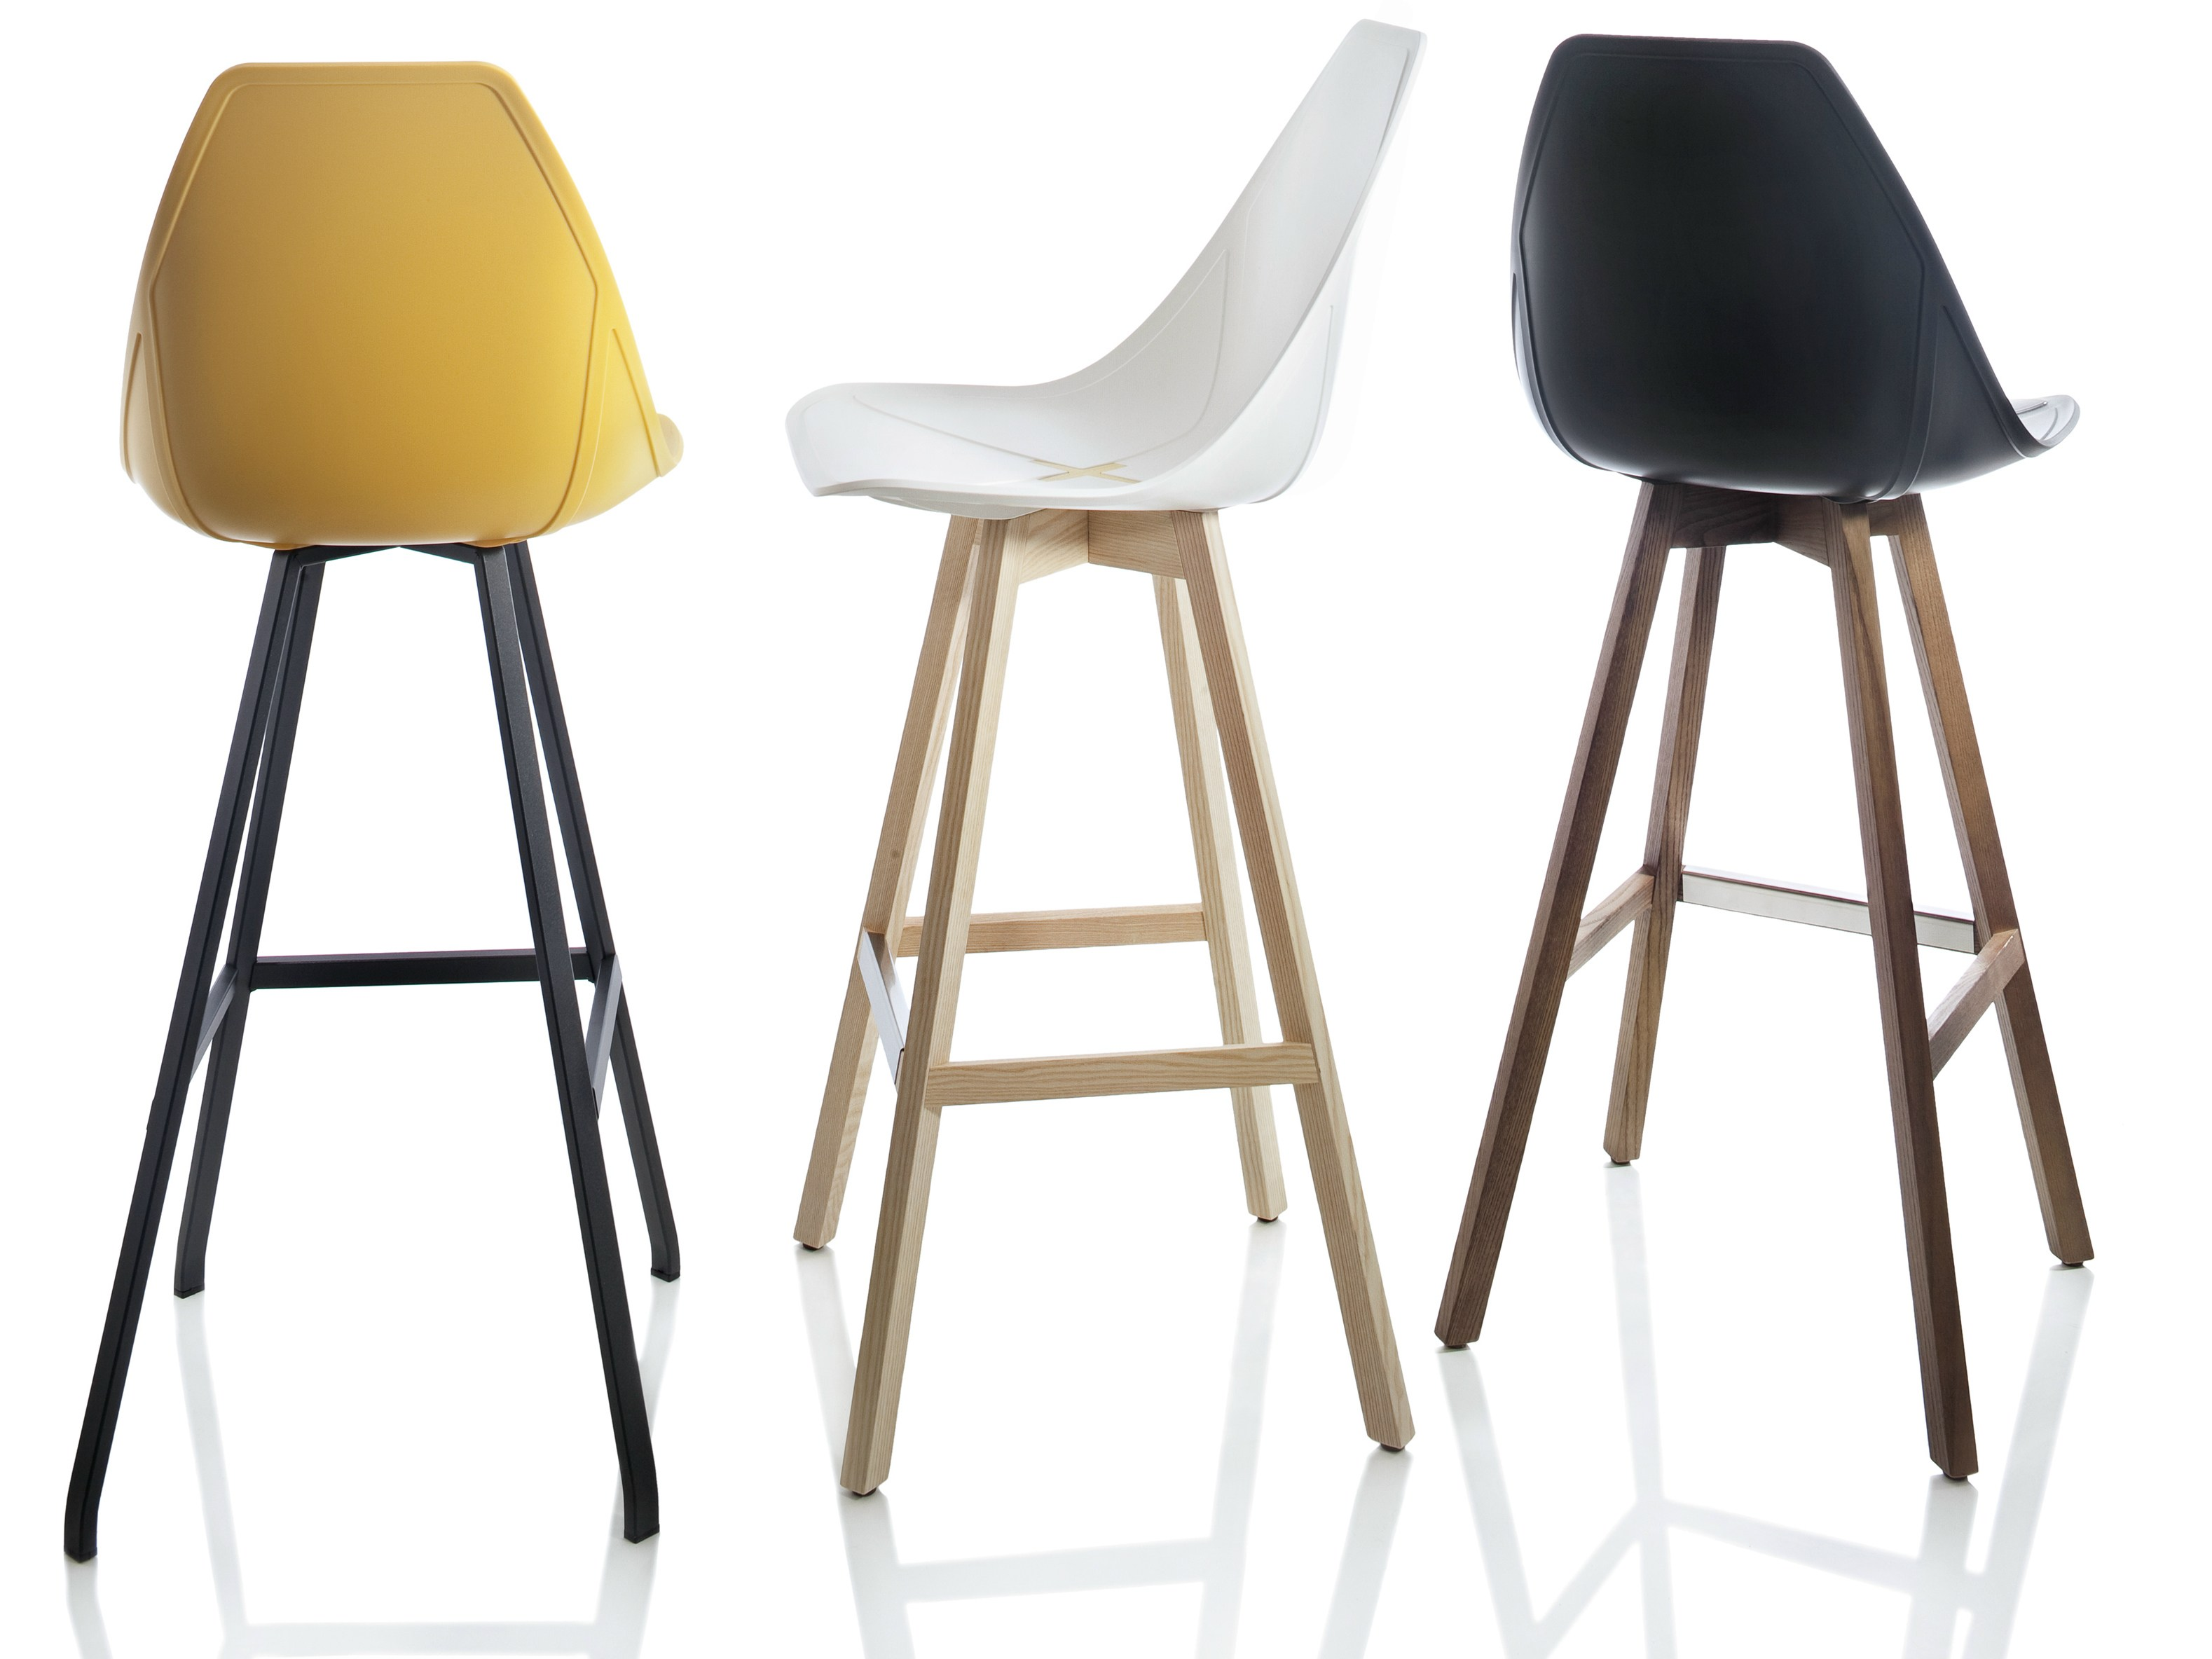 x stool barstuhl kollektion x stool by alma design design mario mazzer. Black Bedroom Furniture Sets. Home Design Ideas